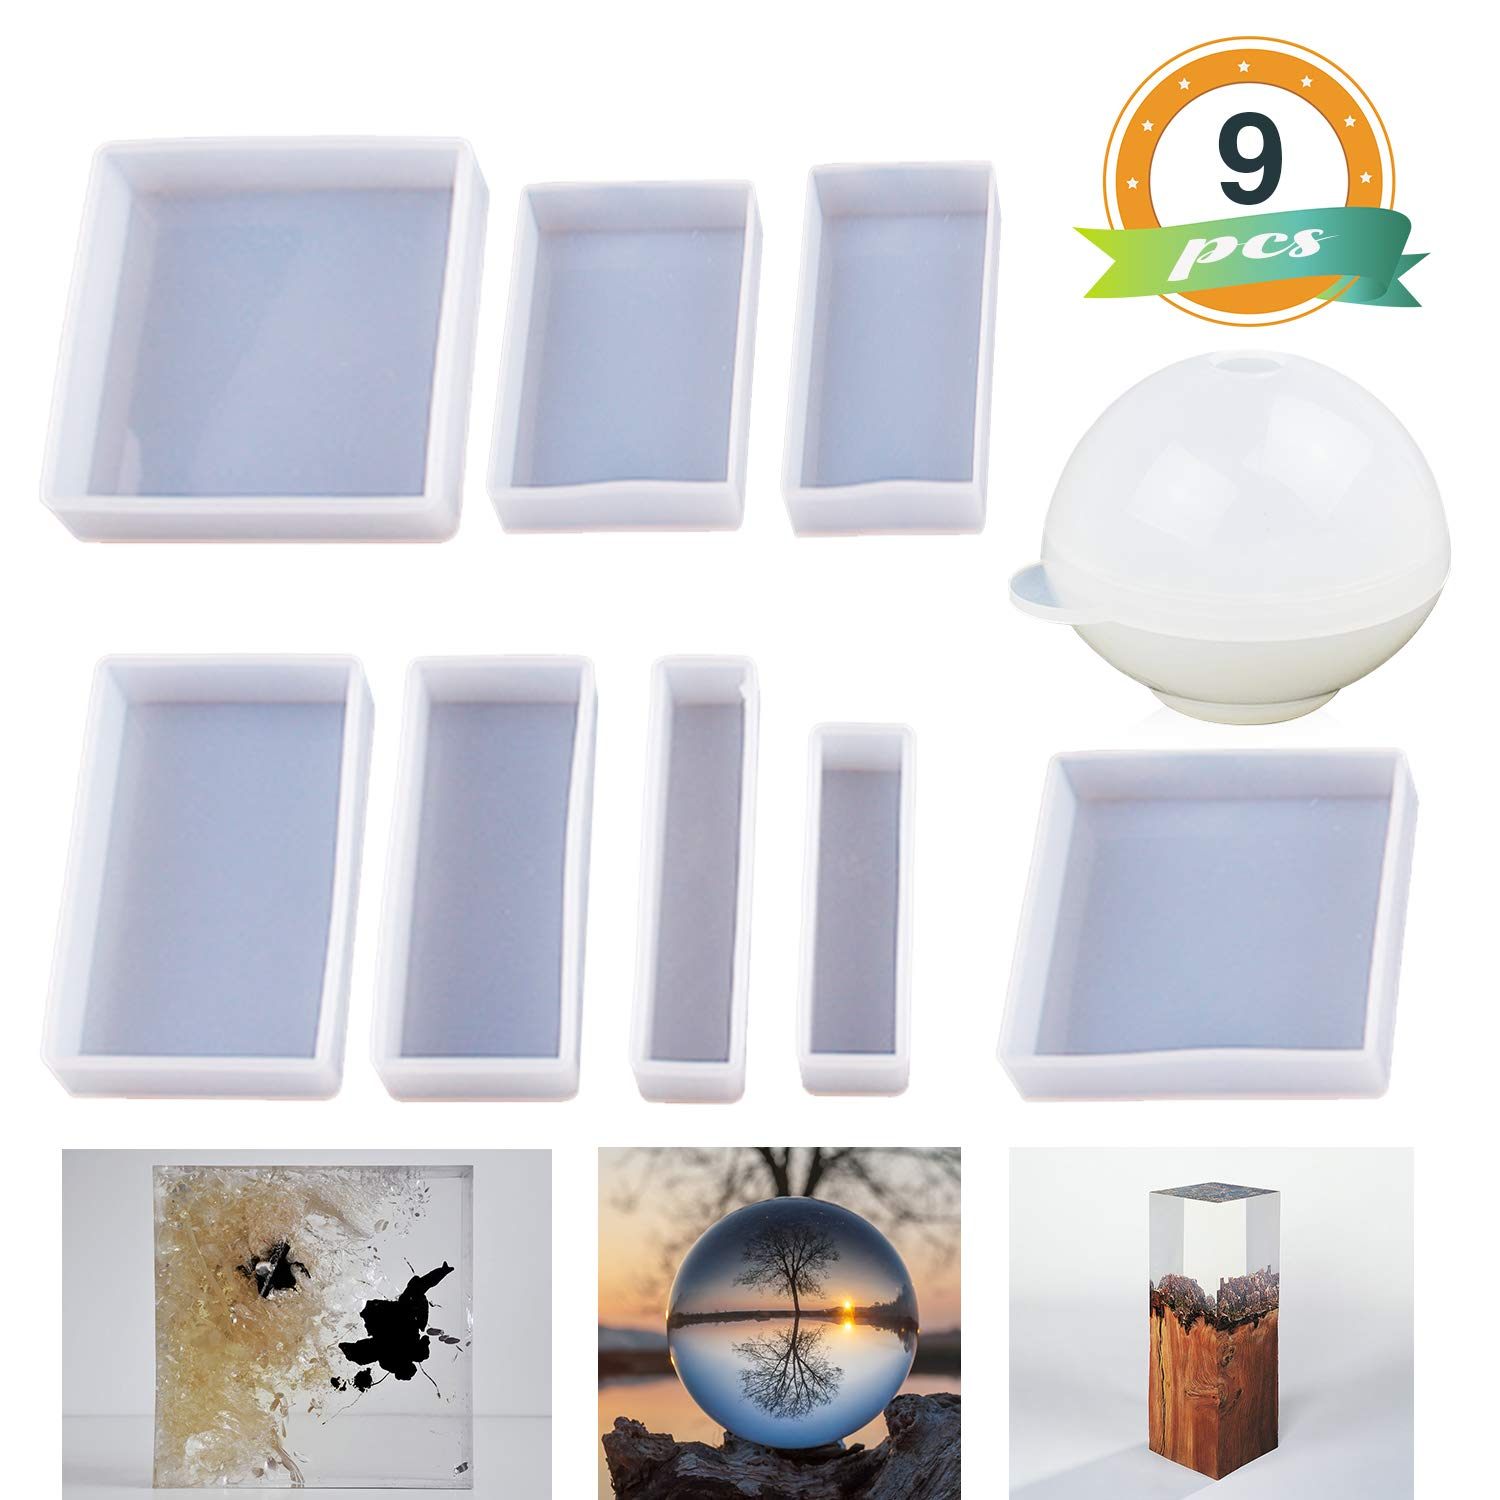 Epoxy Resin Molds LET'S RESIN Resin Casting Molds Silicone Square Ball Molds 9PCS Different Sizes, Silicone Resin Mold for Resin Jewelry, Soap, Dried Flower Leaf, Insect Specimen DIY Fans by LET'S RESIN